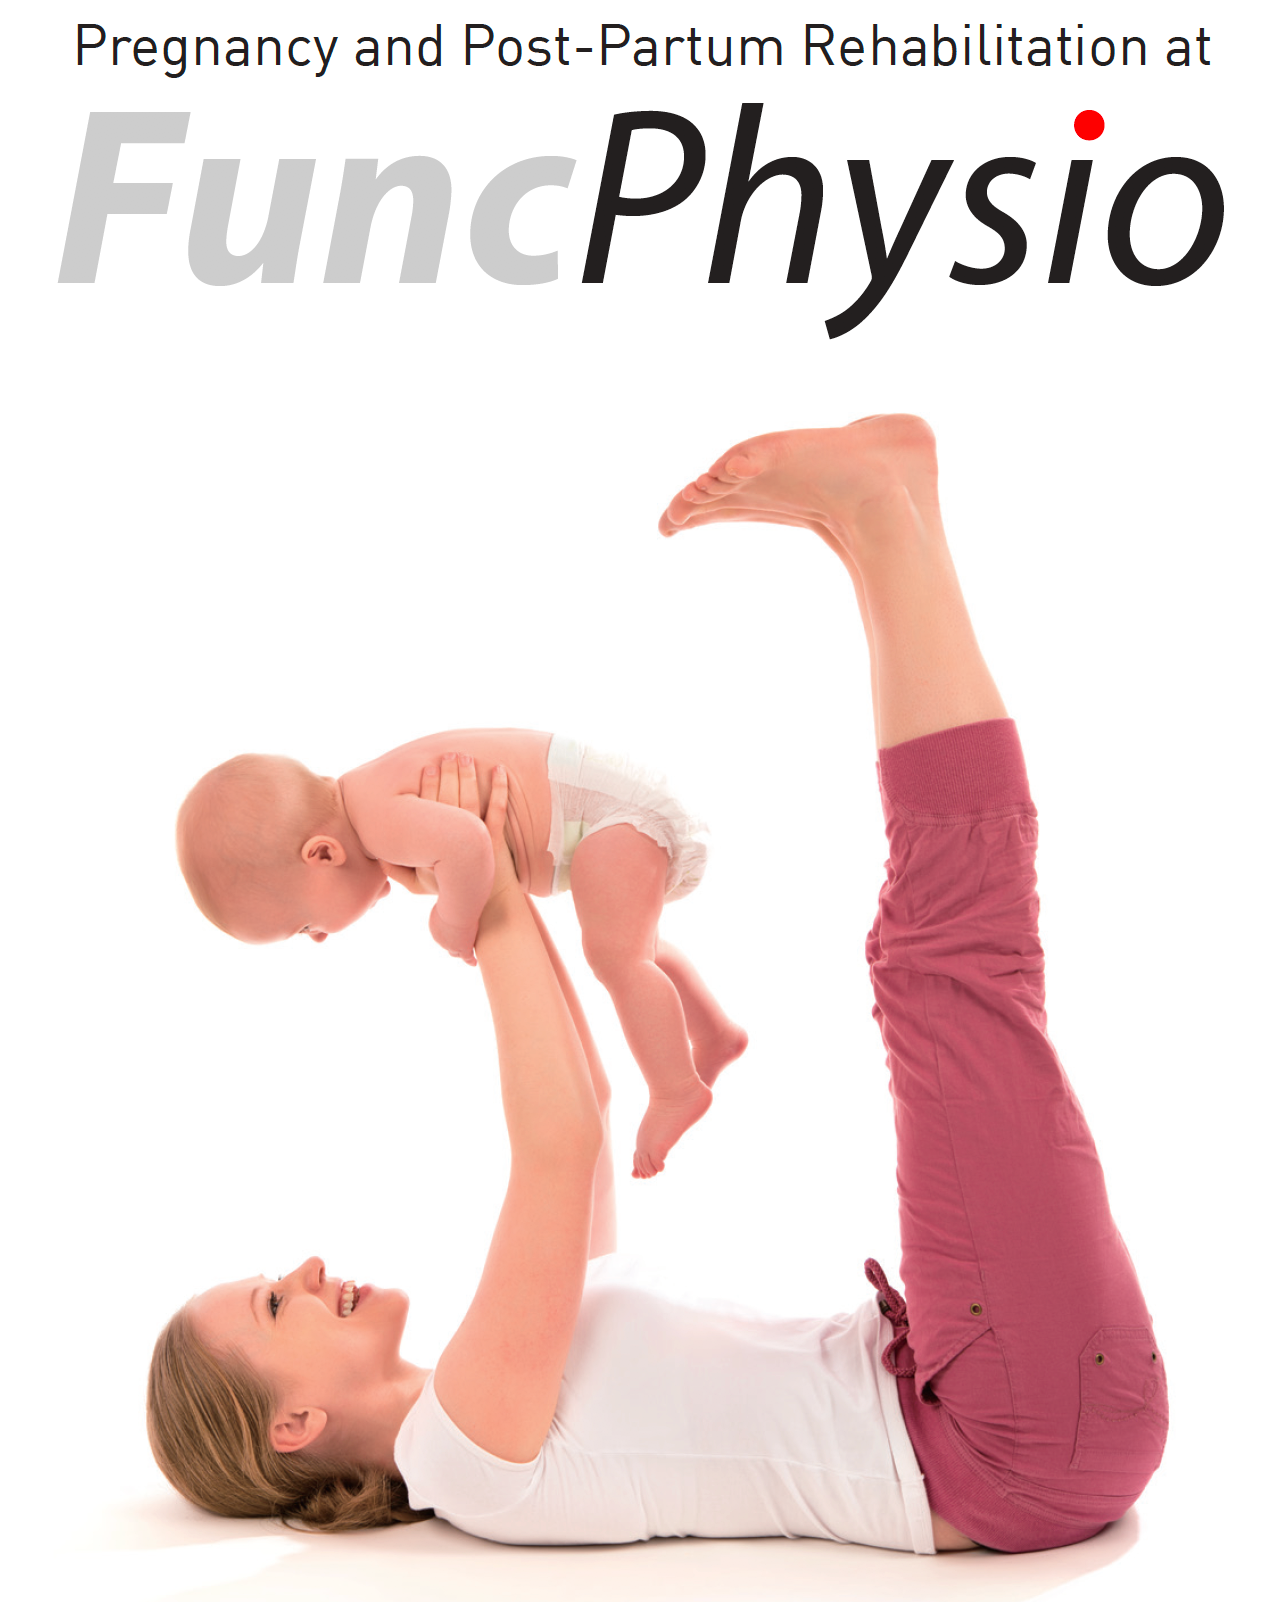 Pregnancy and Post-Partum Rehabilitations